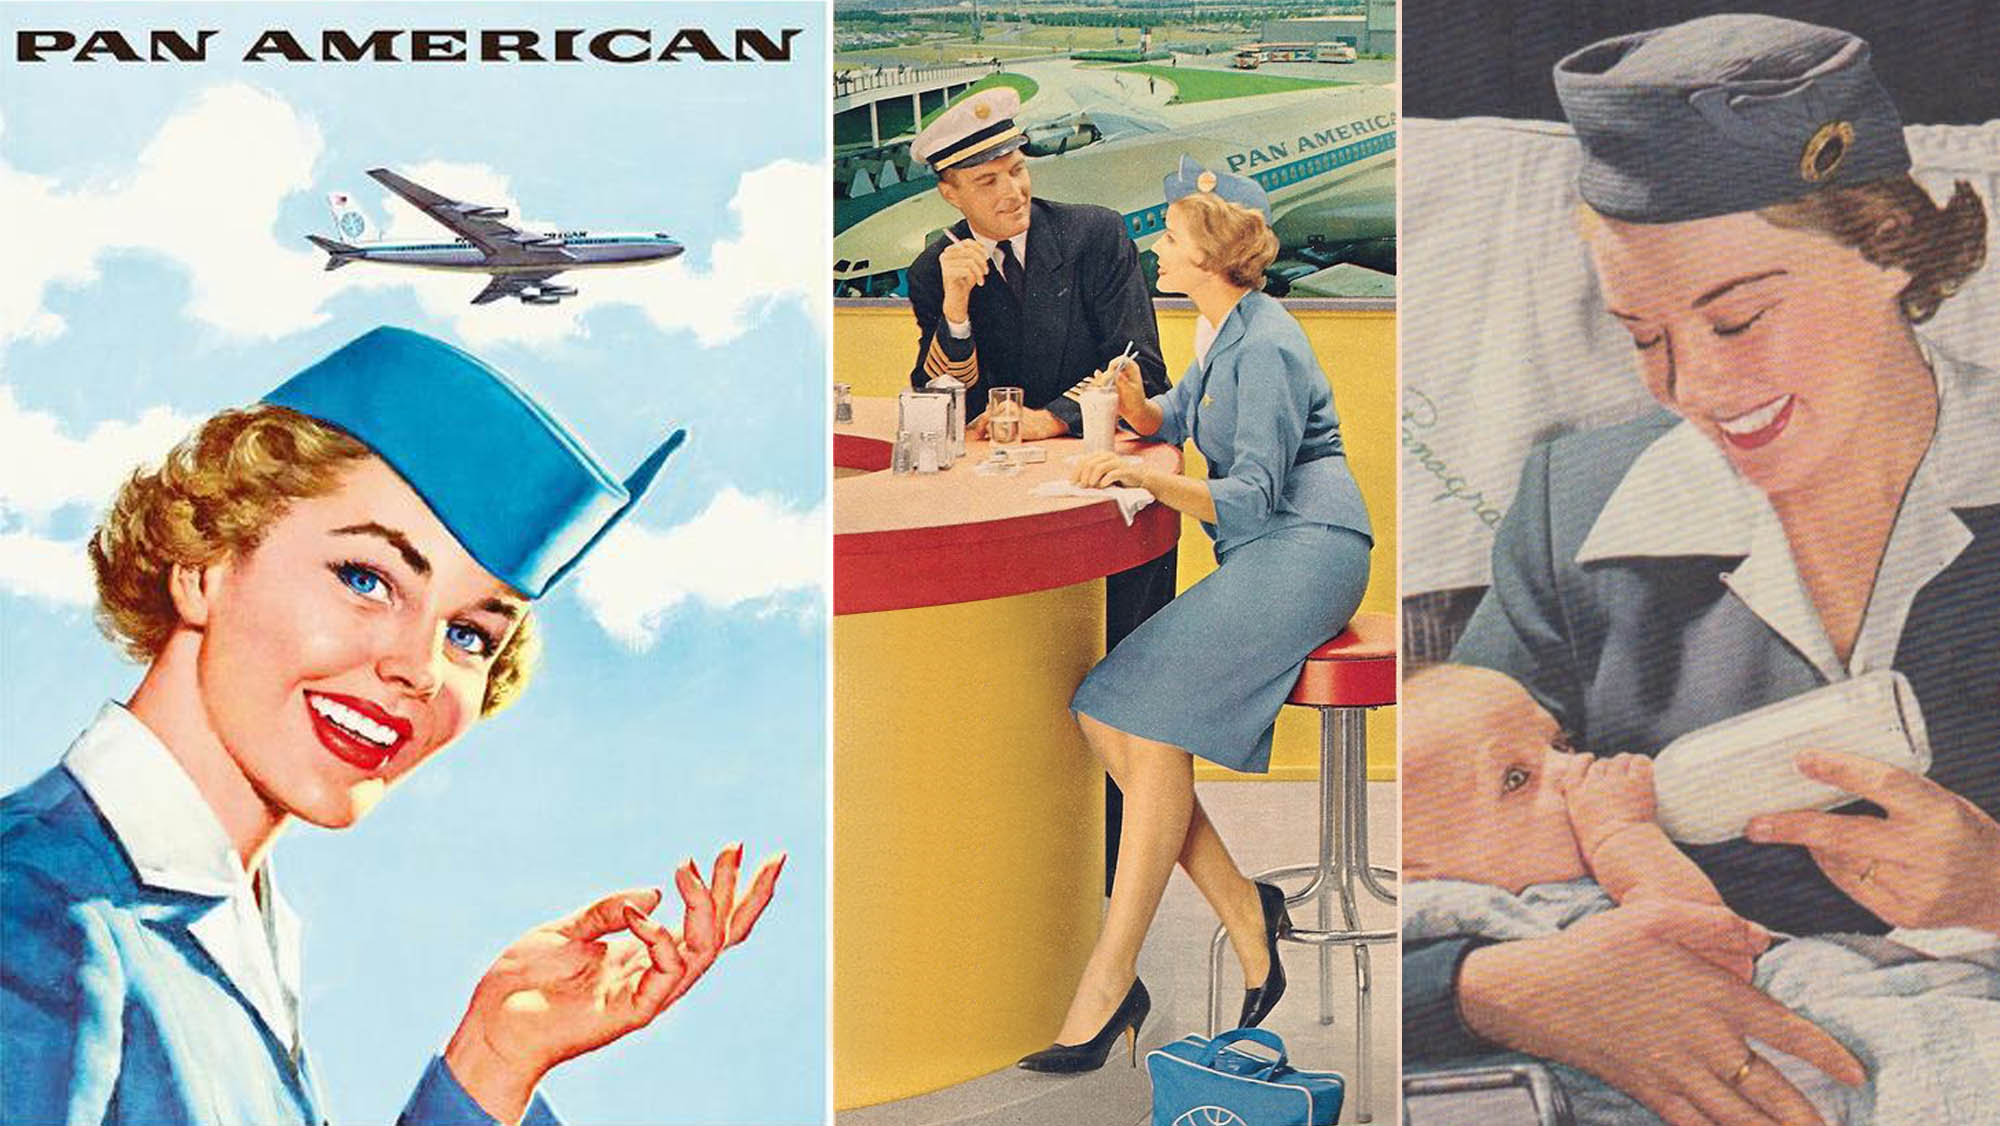 PAN AM retro ads for Joan Seed's blog post The Making of Cockpit Girl